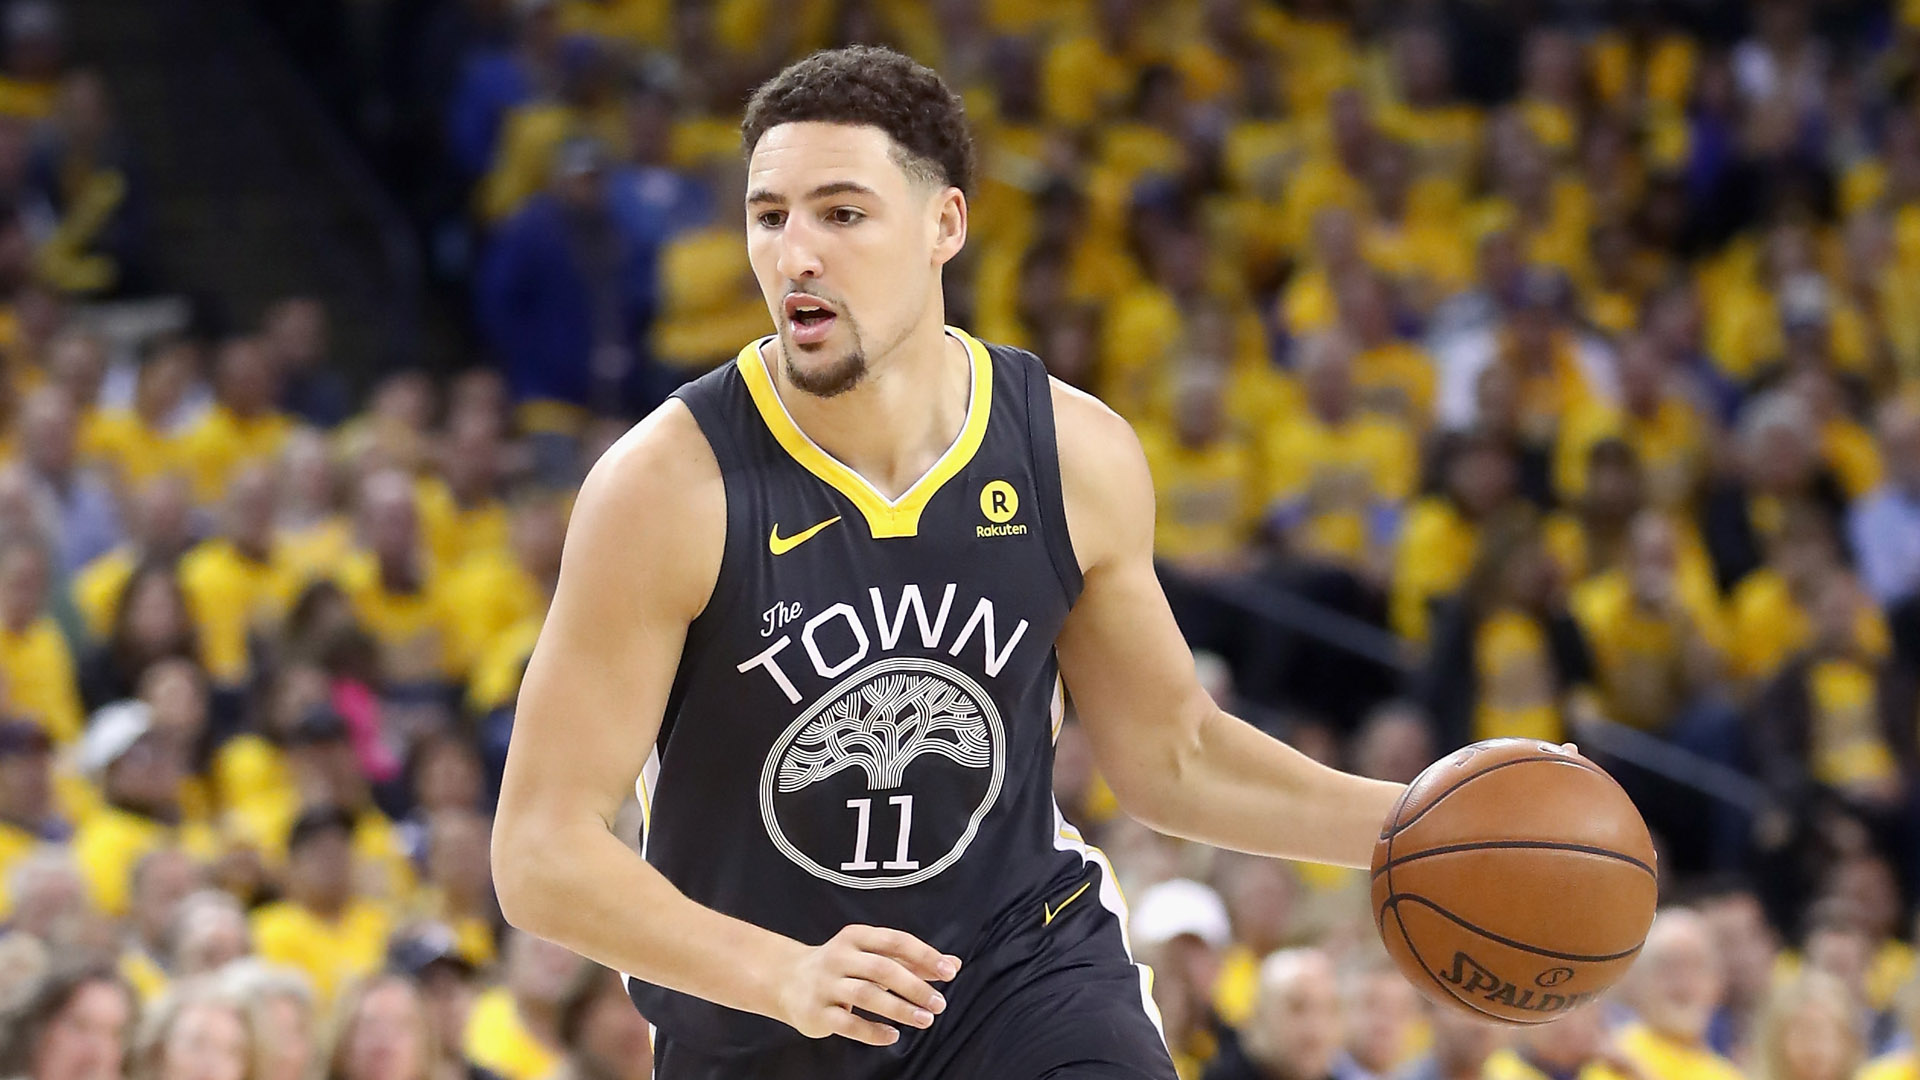 Warriors guard Klay Thompson sets NBA record, knocks down 14 3-pointers in win over Bulls